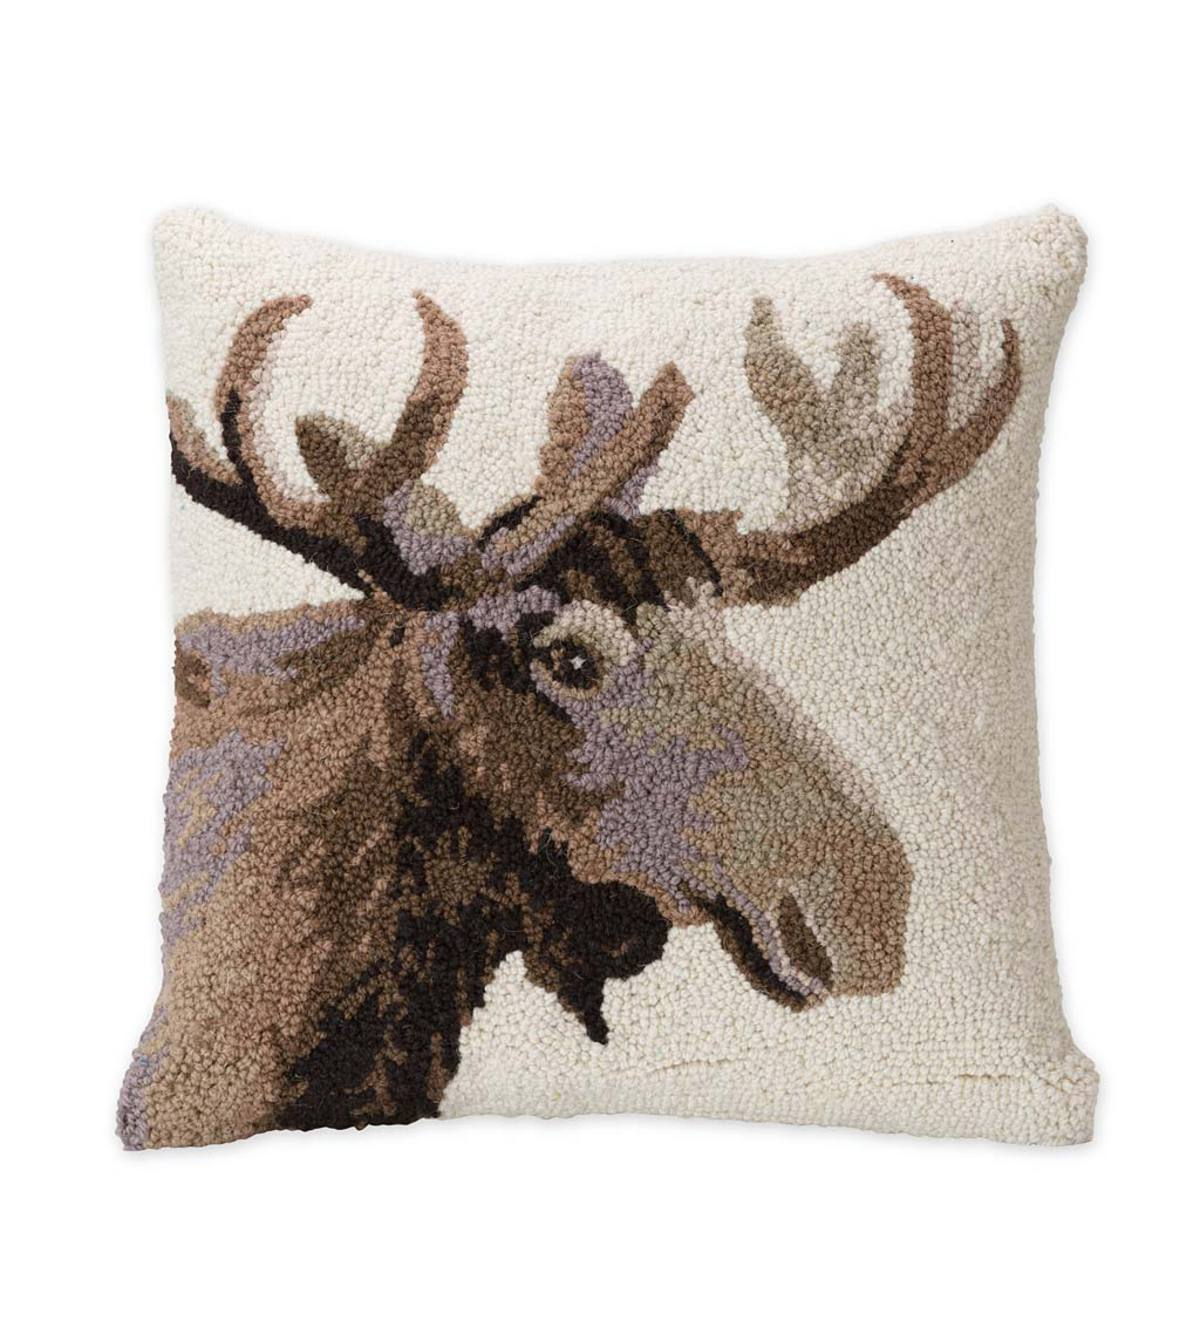 Hand Hooked Wool Pillow With Moose